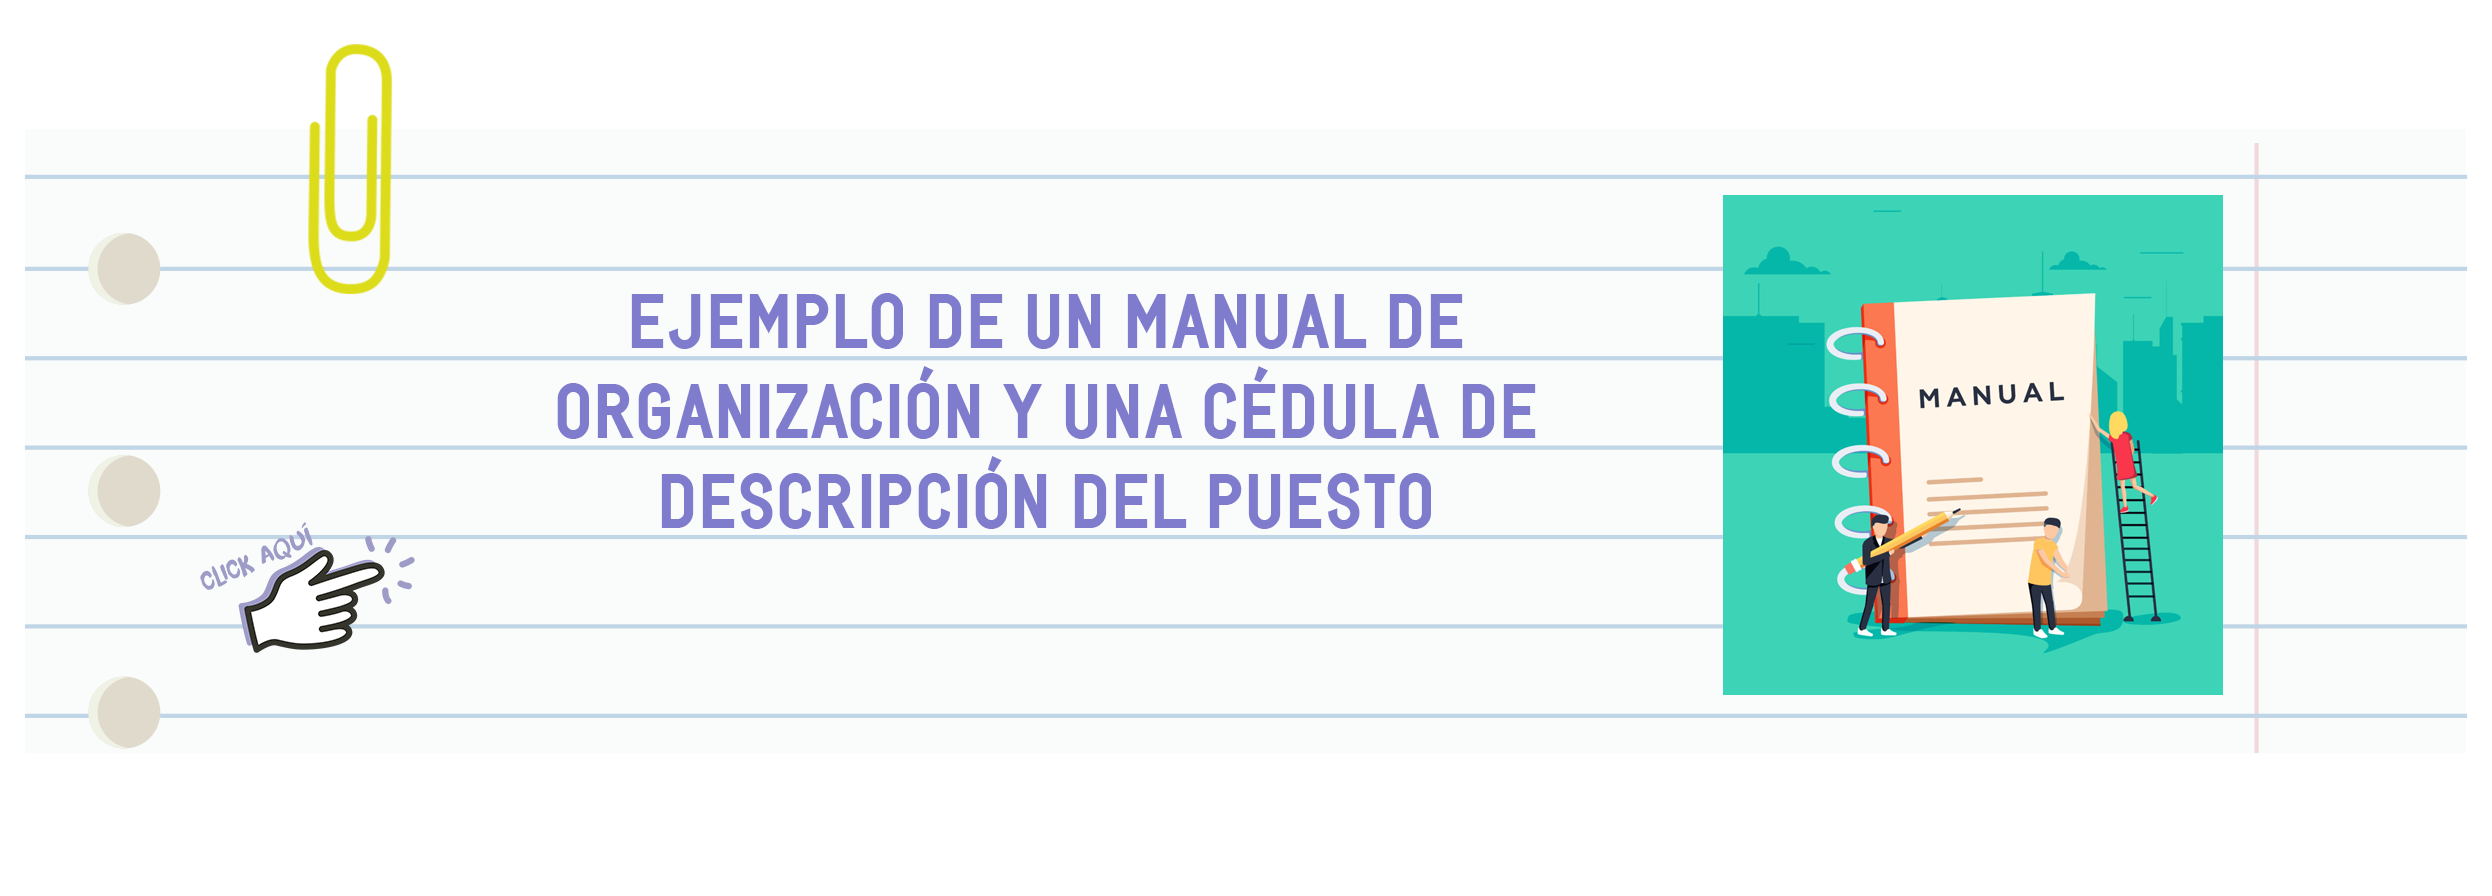 manual_organizacion_cedula_descripcion_puestol.png